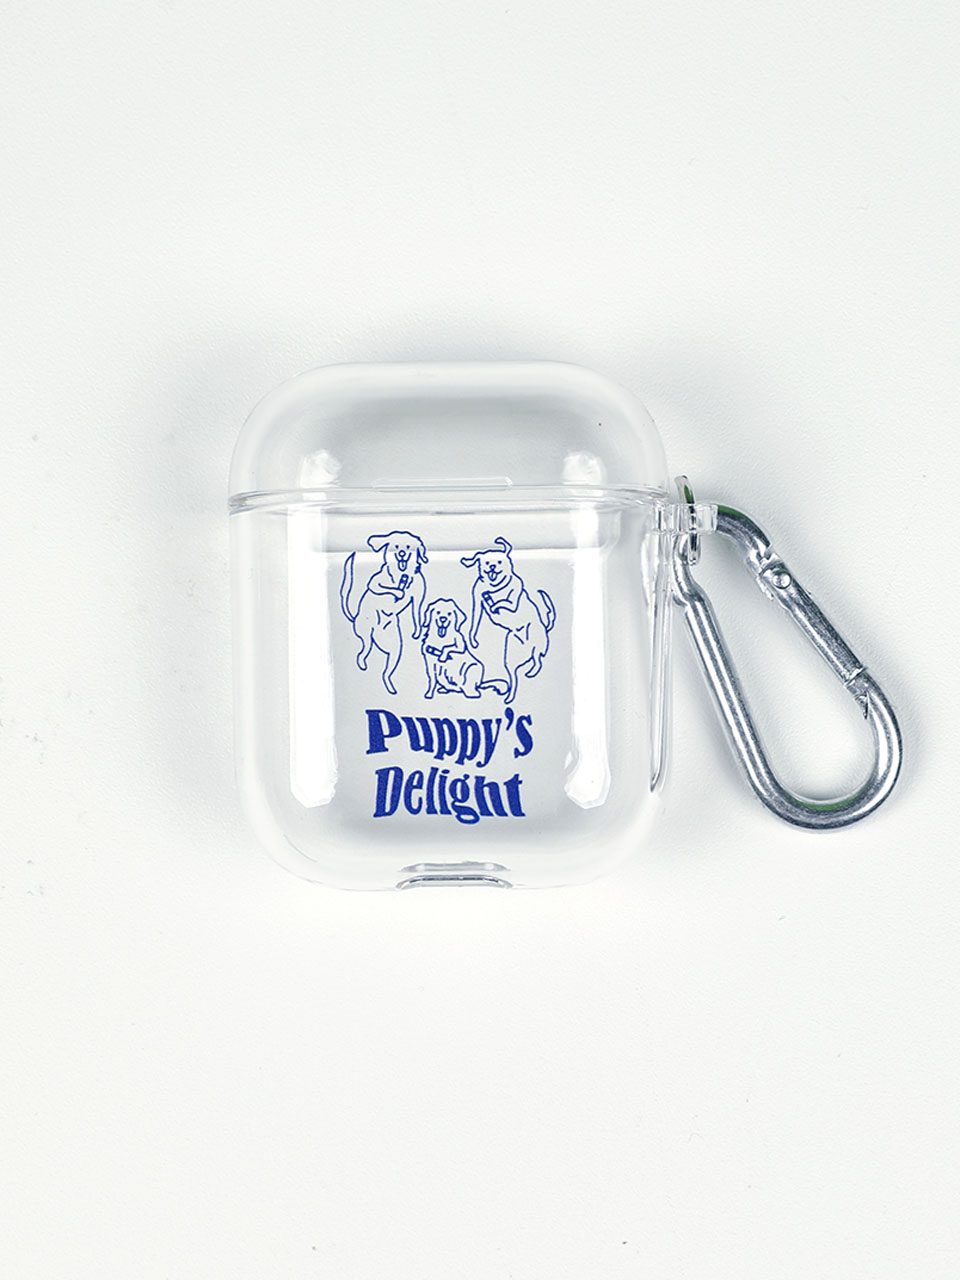 Puppy's delight AirPods case clear